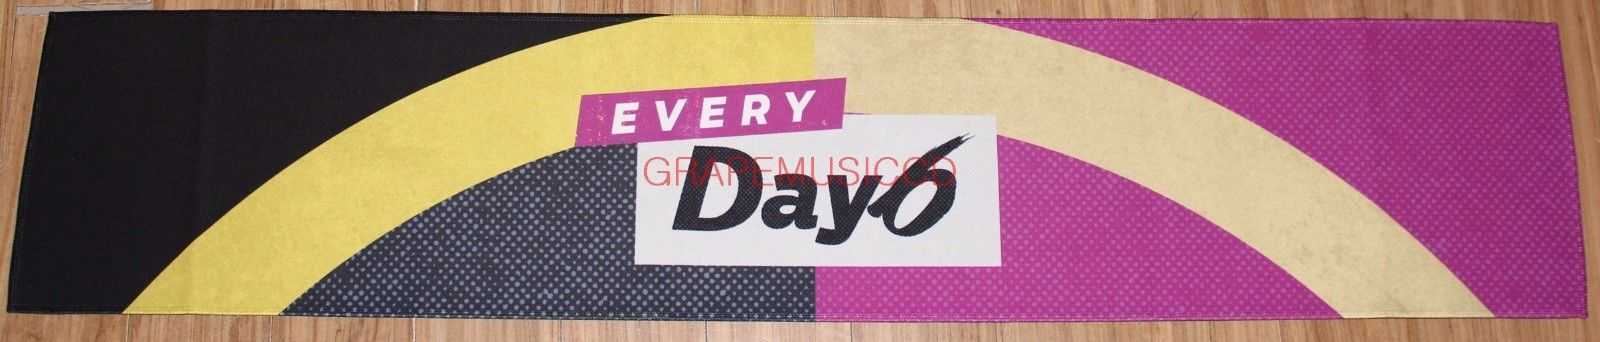 DAY6 EVERY Day6 CONCERT IN February OFFICIAL GOODS K-POP